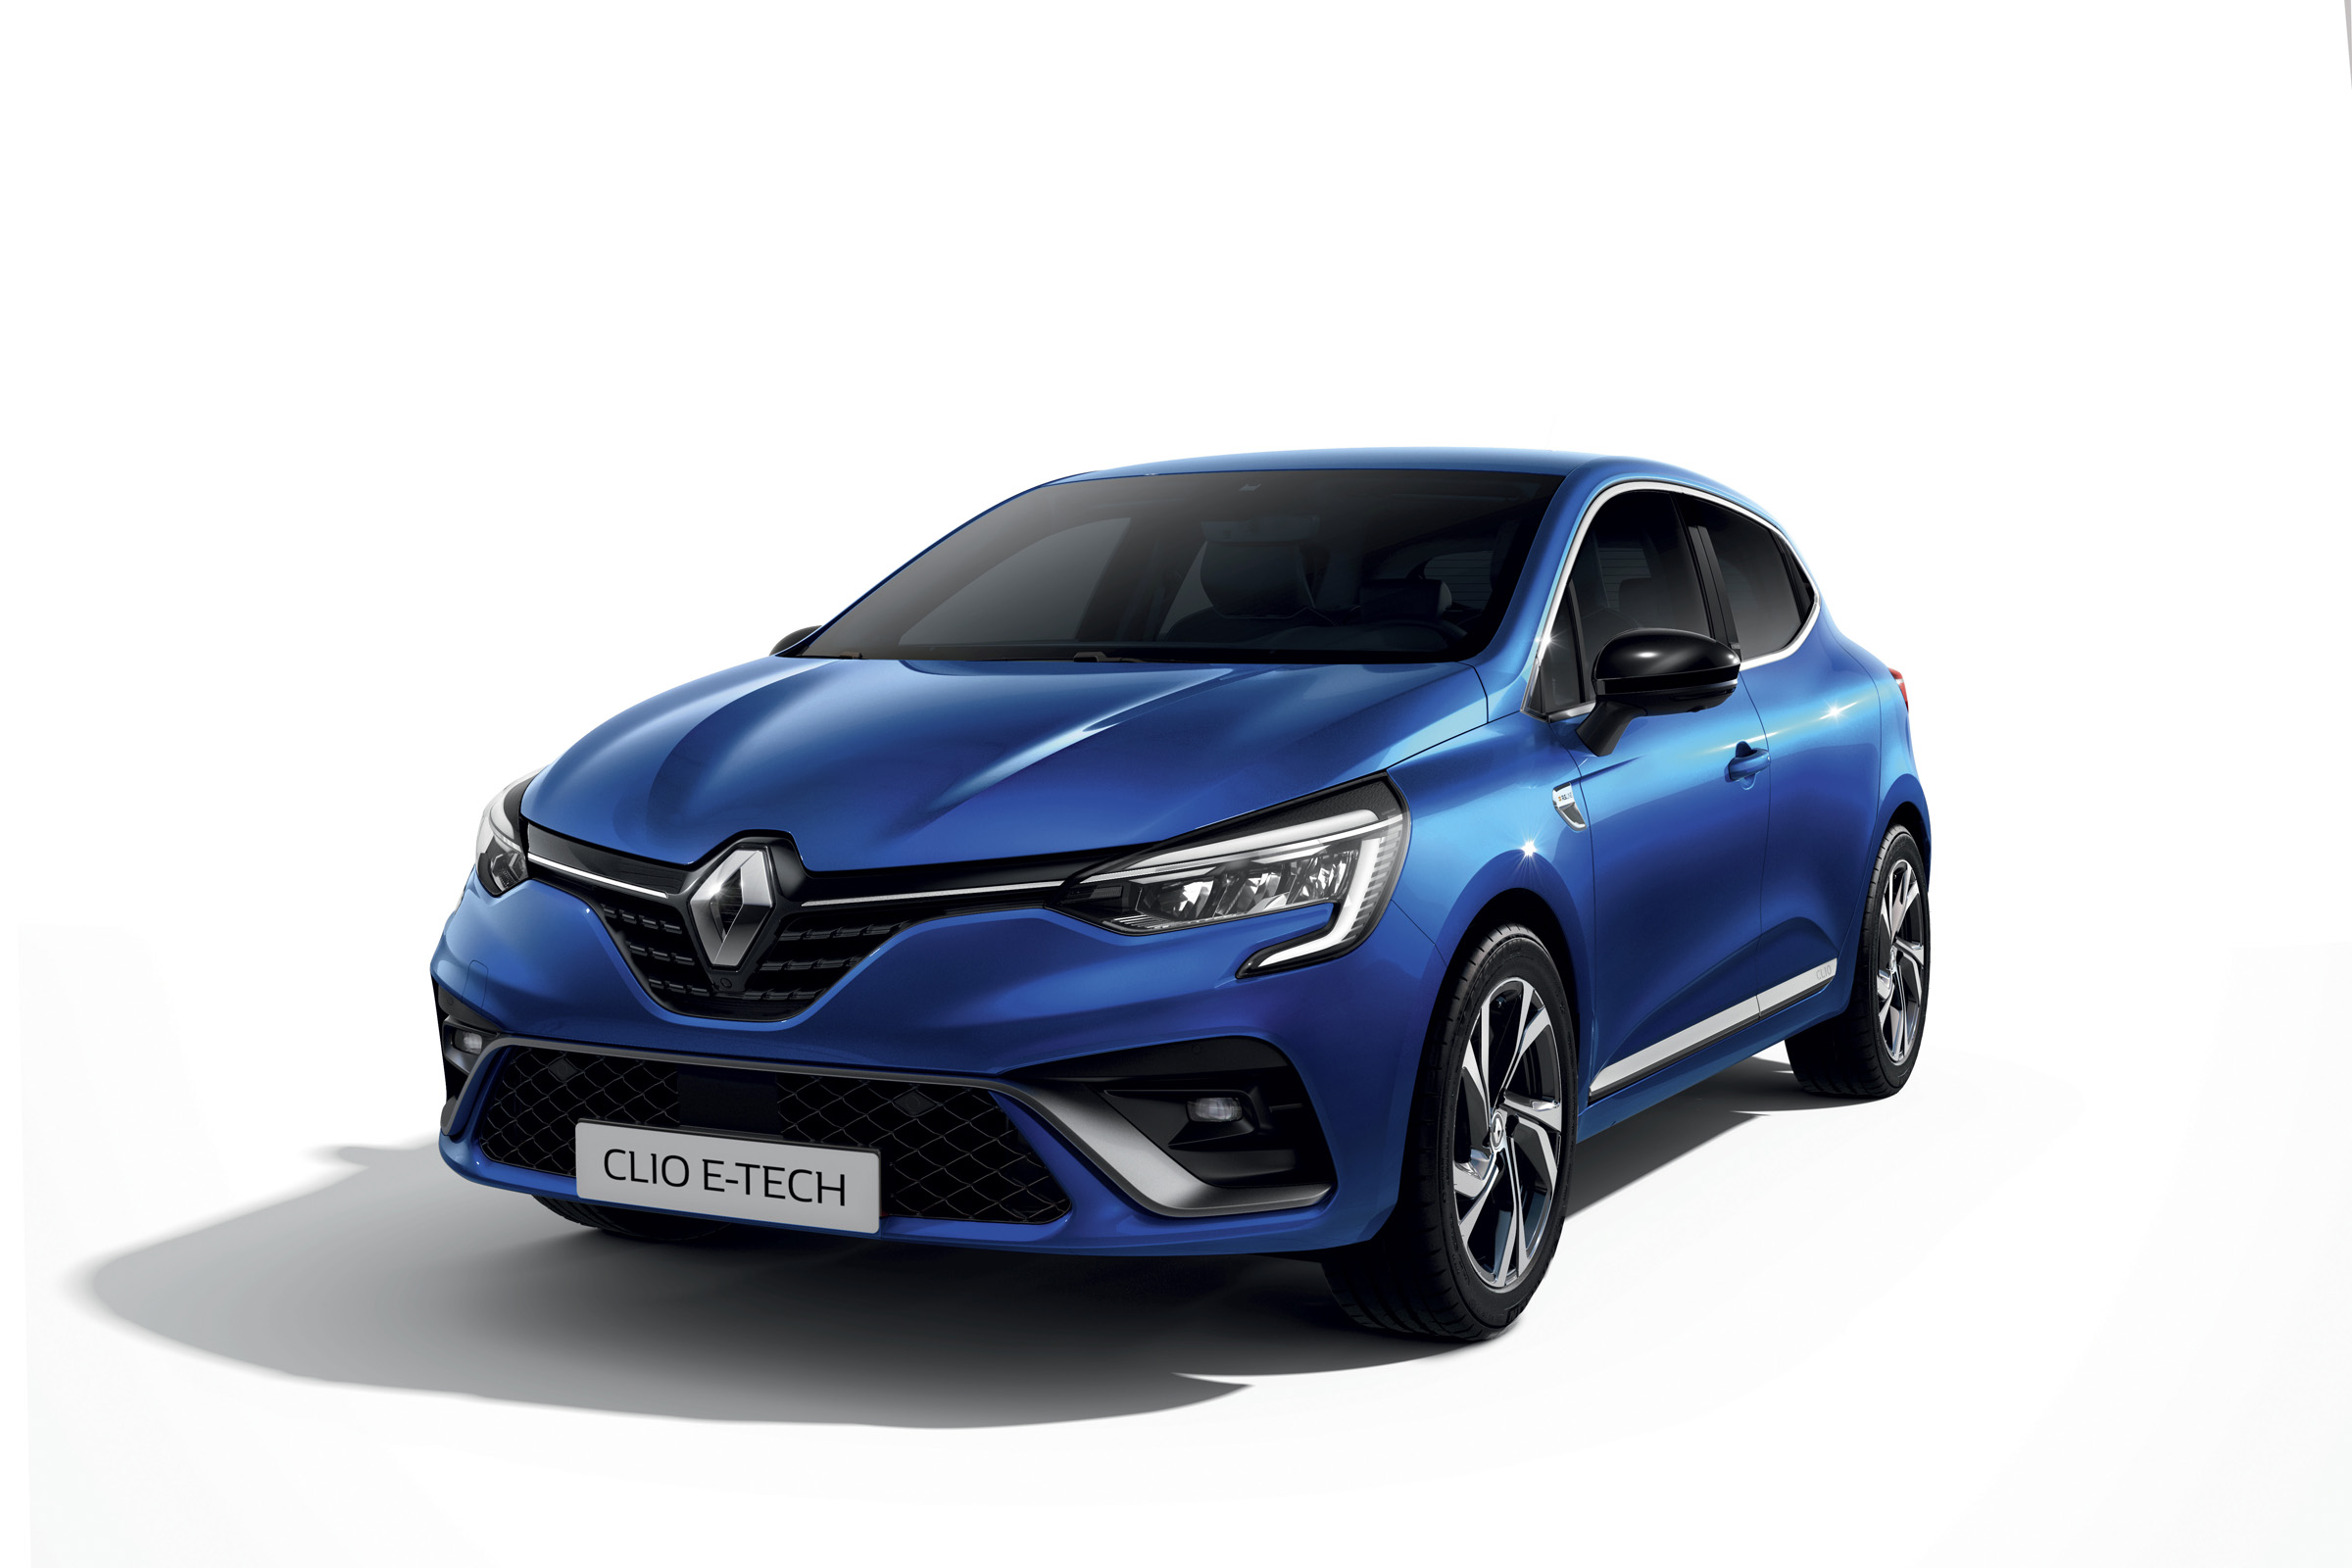 New 2020 Renault Clio E Tech Hybrid Model Starts At 19 595 Carbuyer